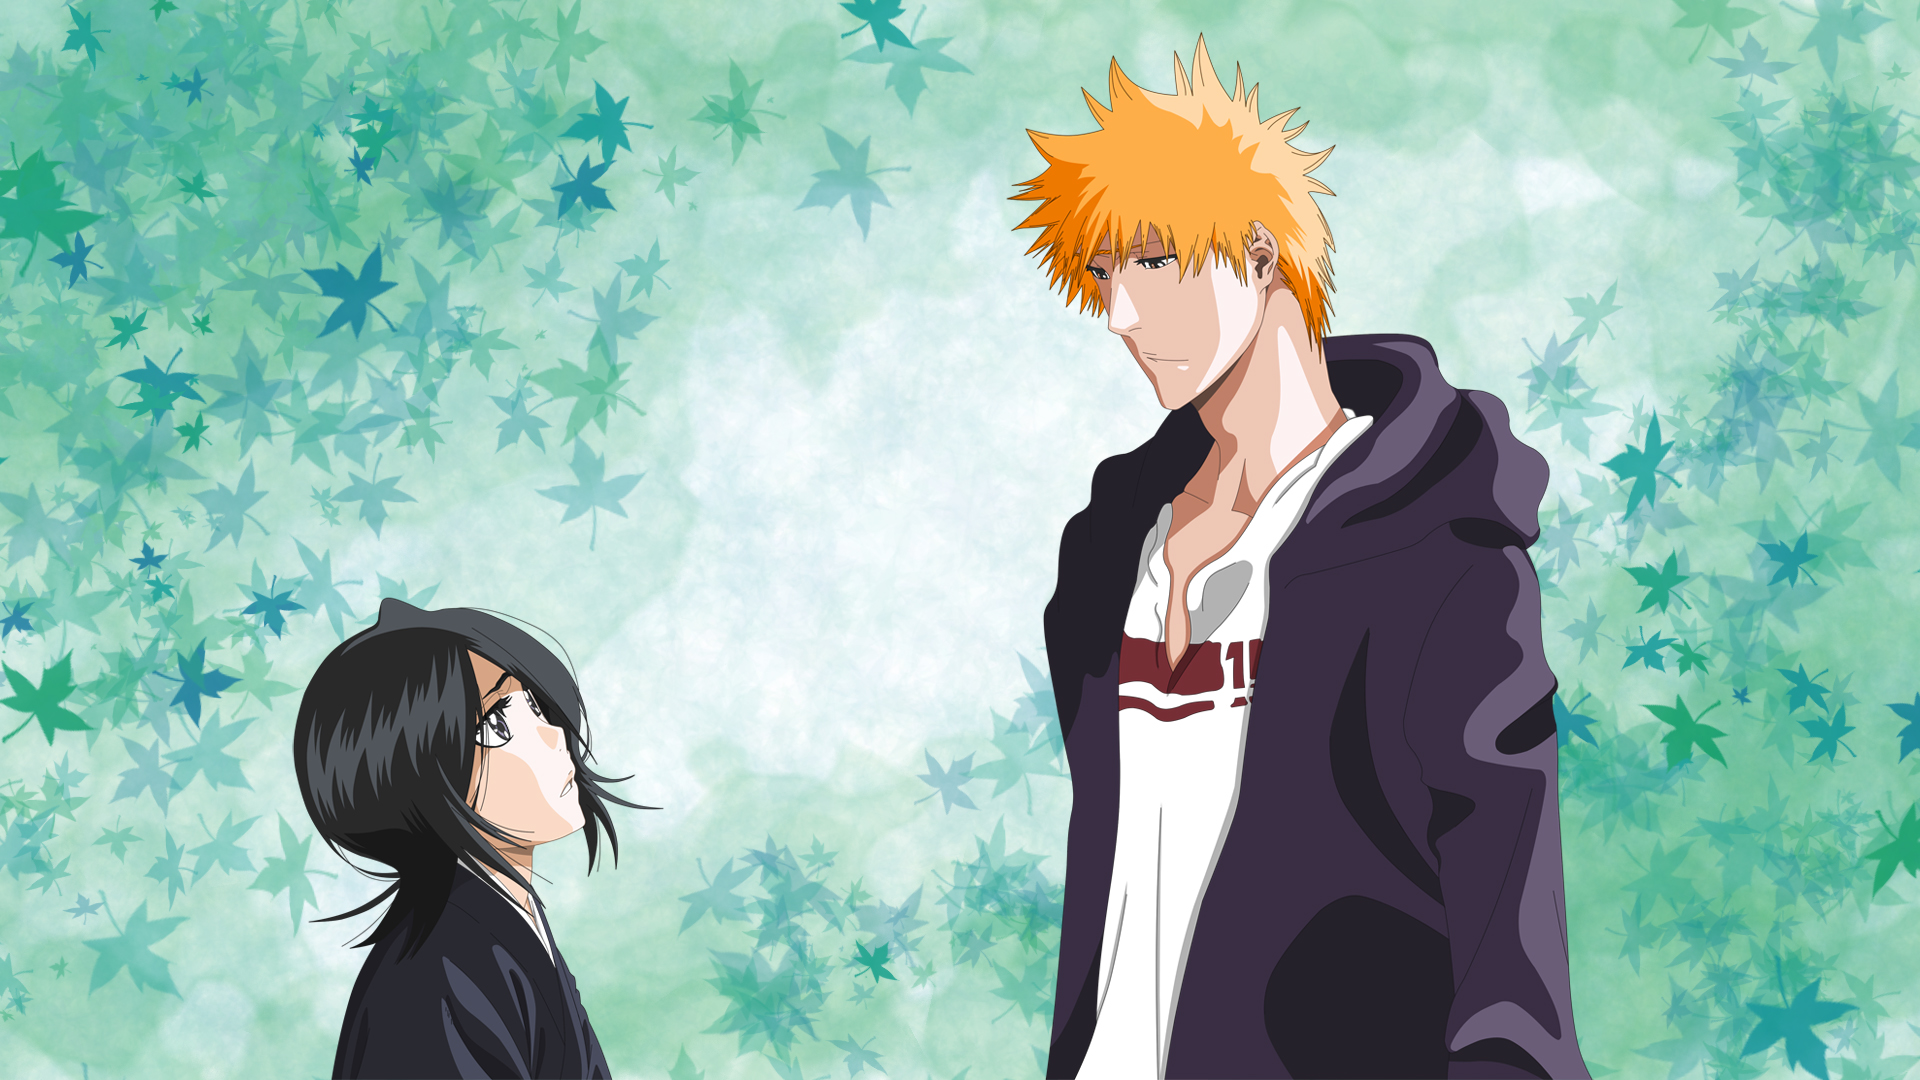 bleach rukia and ichigo wallpaper by giamini on deviantart